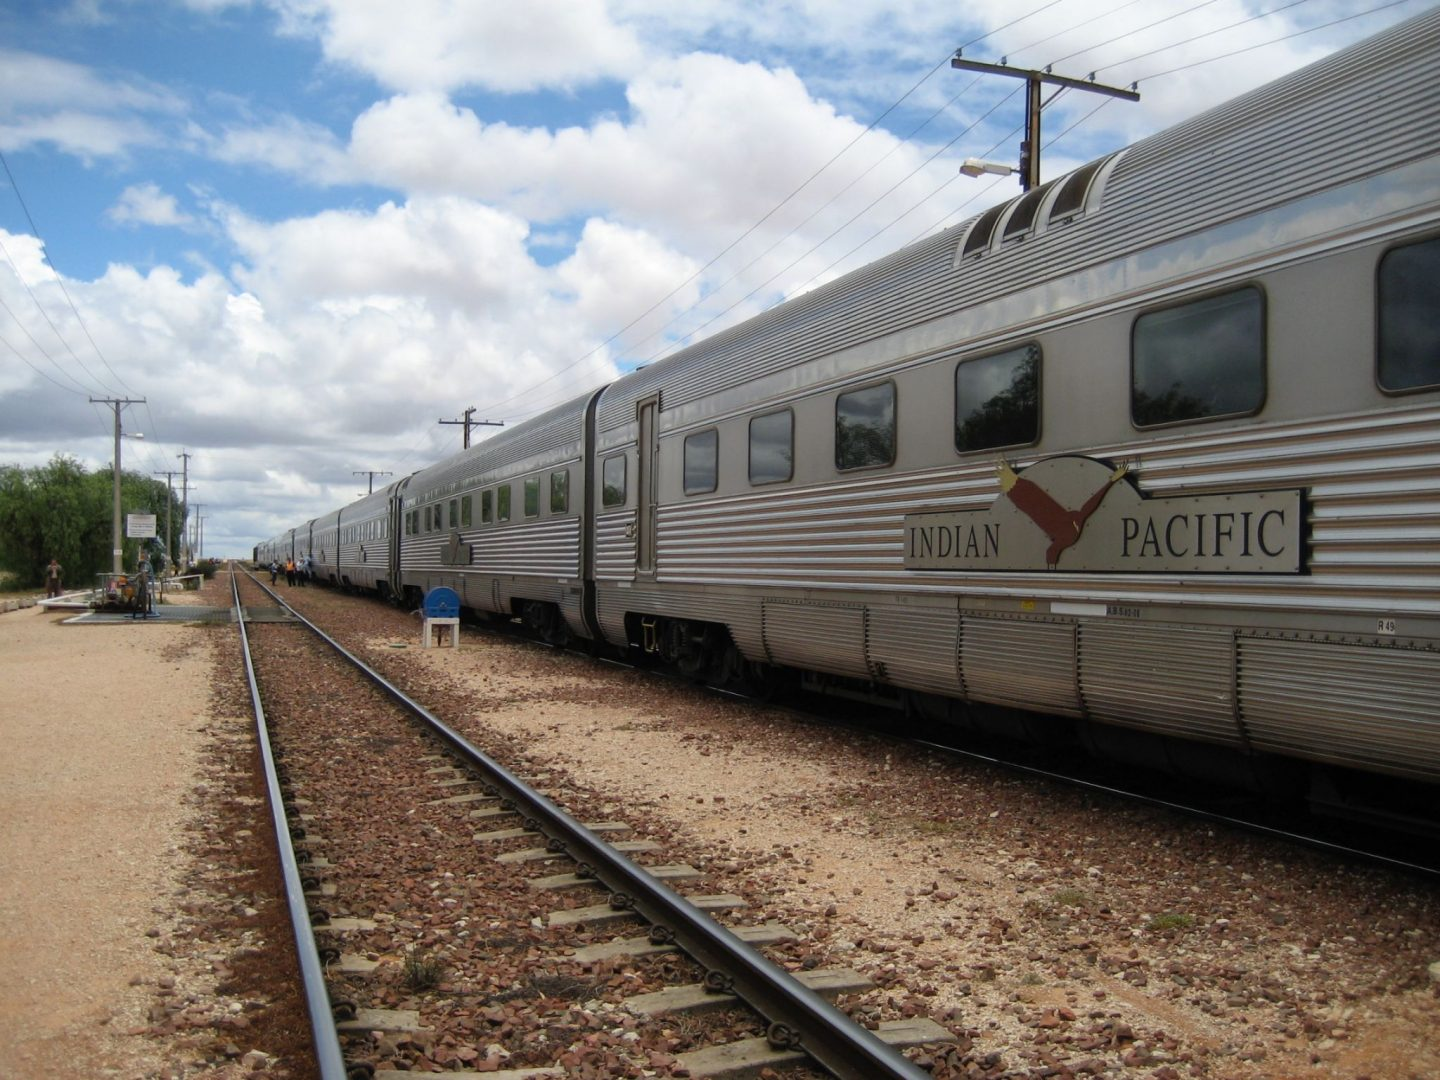 The Indian Pacific Train Sydney to Perth